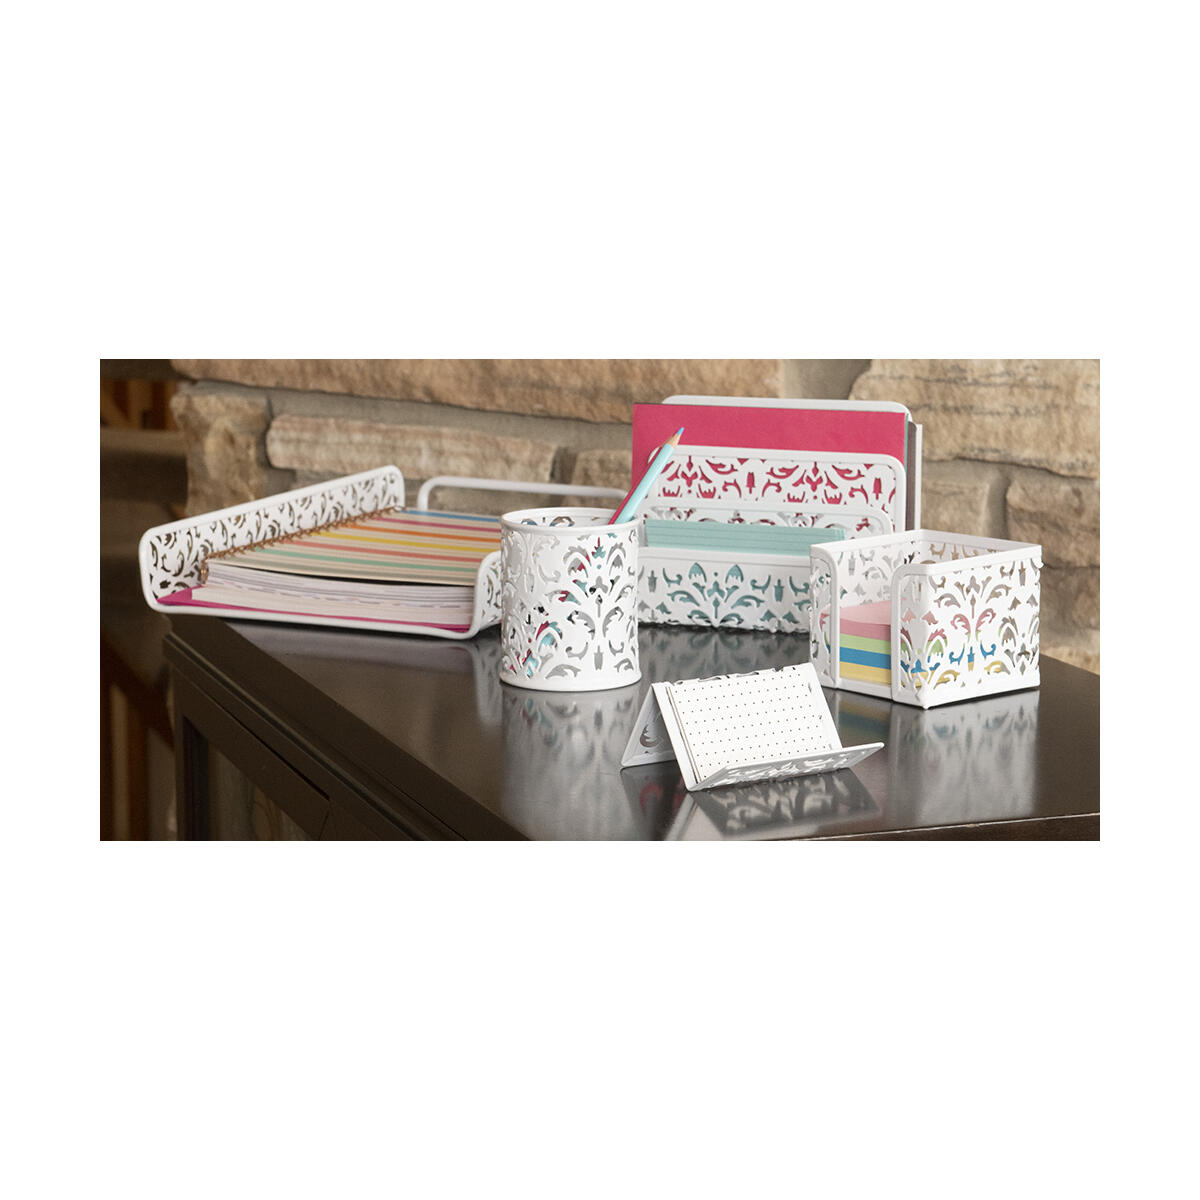 5 Piece Desk Organizer Set for Women and Girls - Choose from 4 style/color combinations